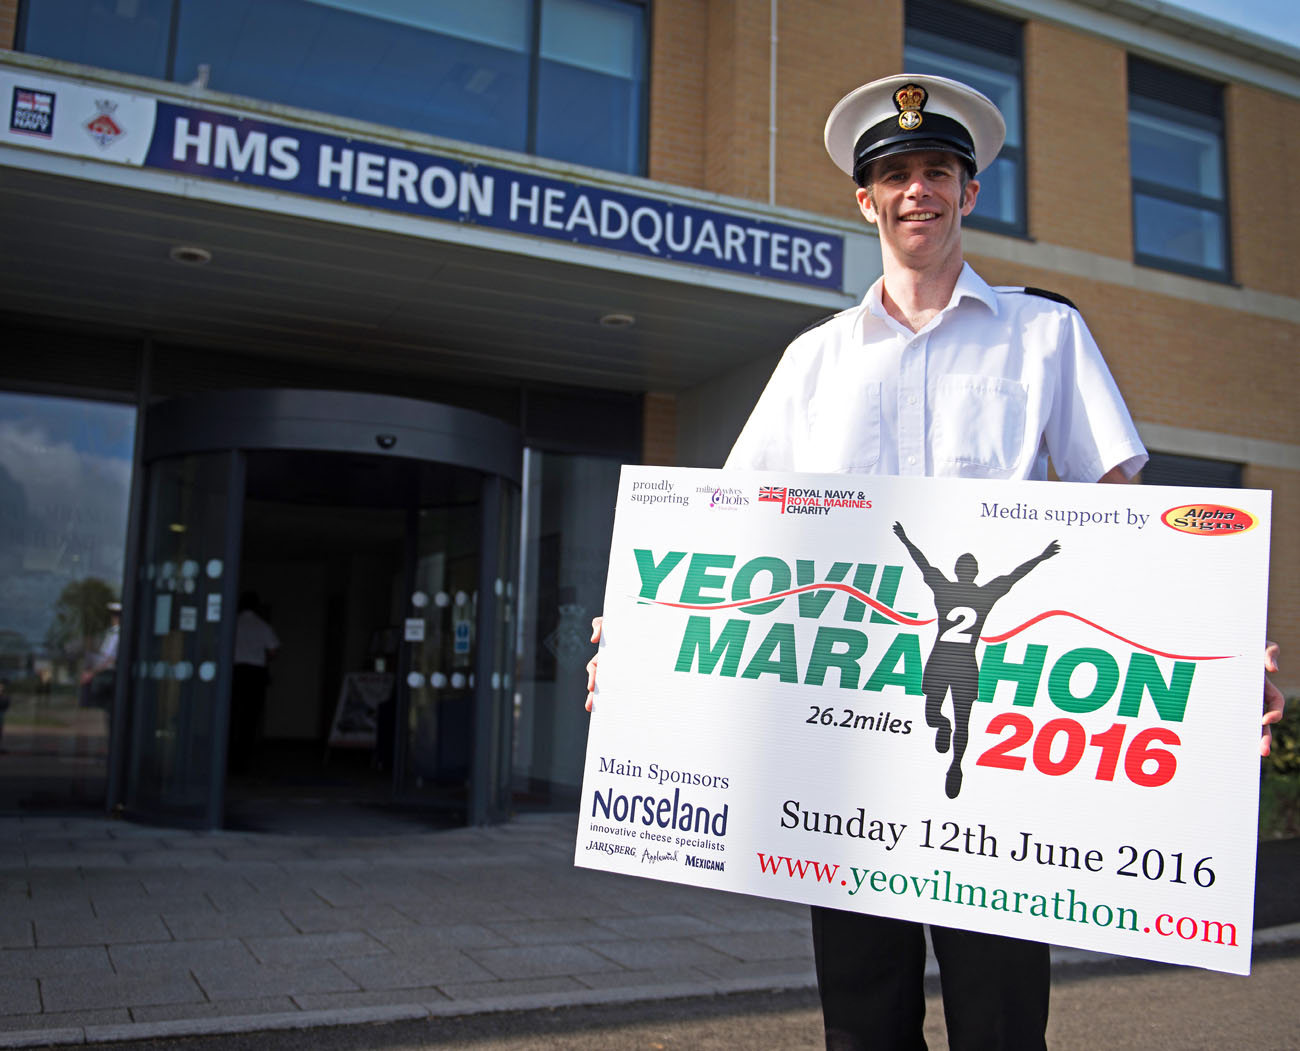 Petty Officers running battle with PTSD leads to Yeovil marathon